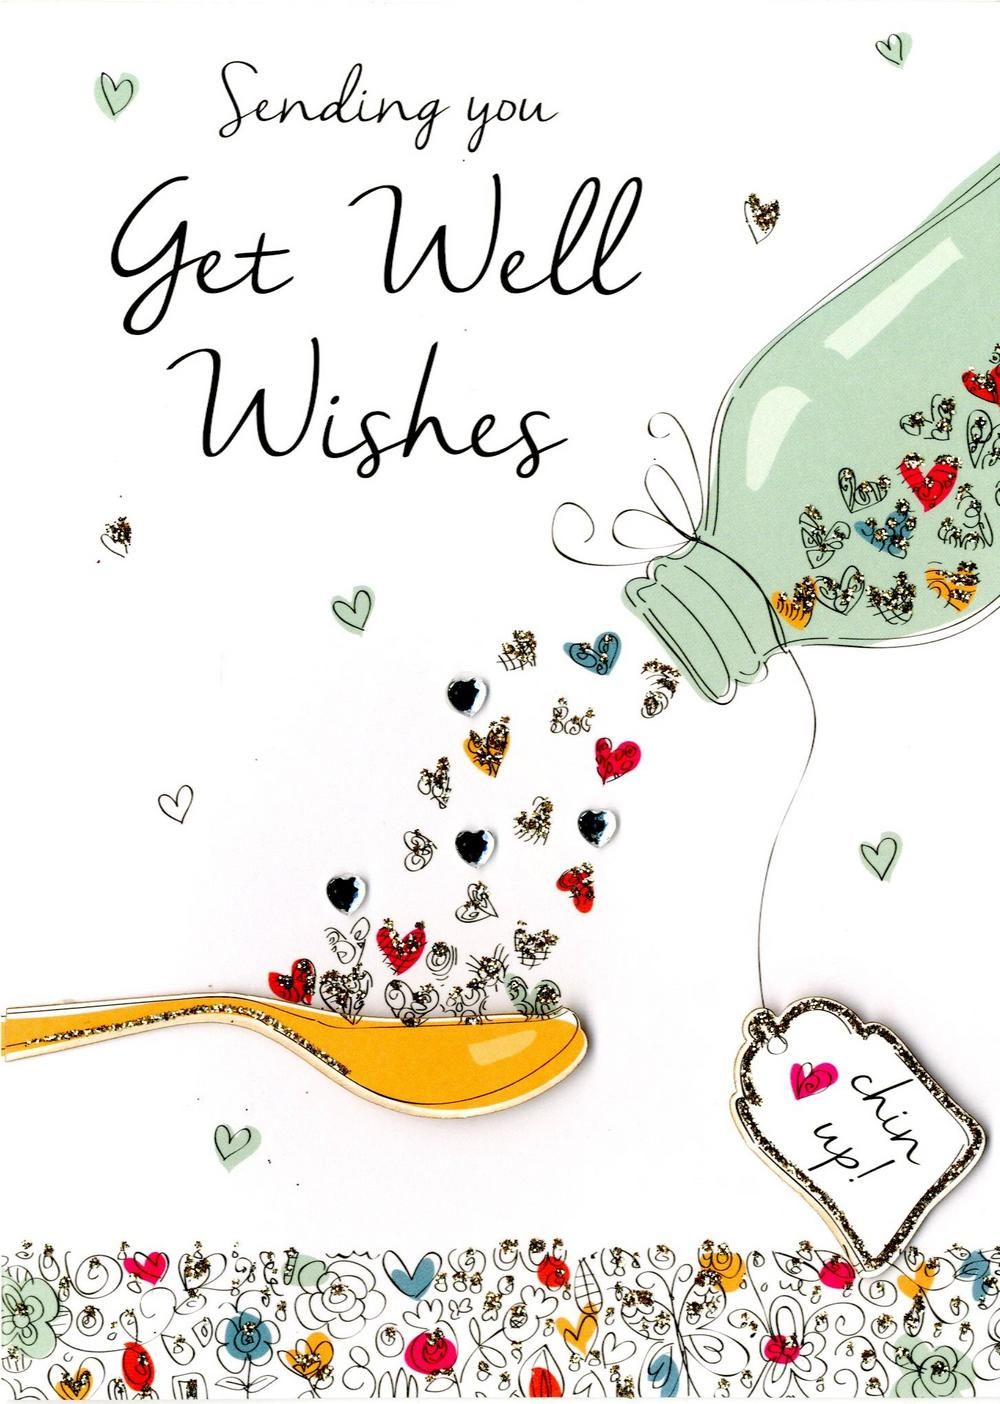 Get well wishes greeting card cards feel better and birthdays get well wishes greeting card more m4hsunfo Choice Image